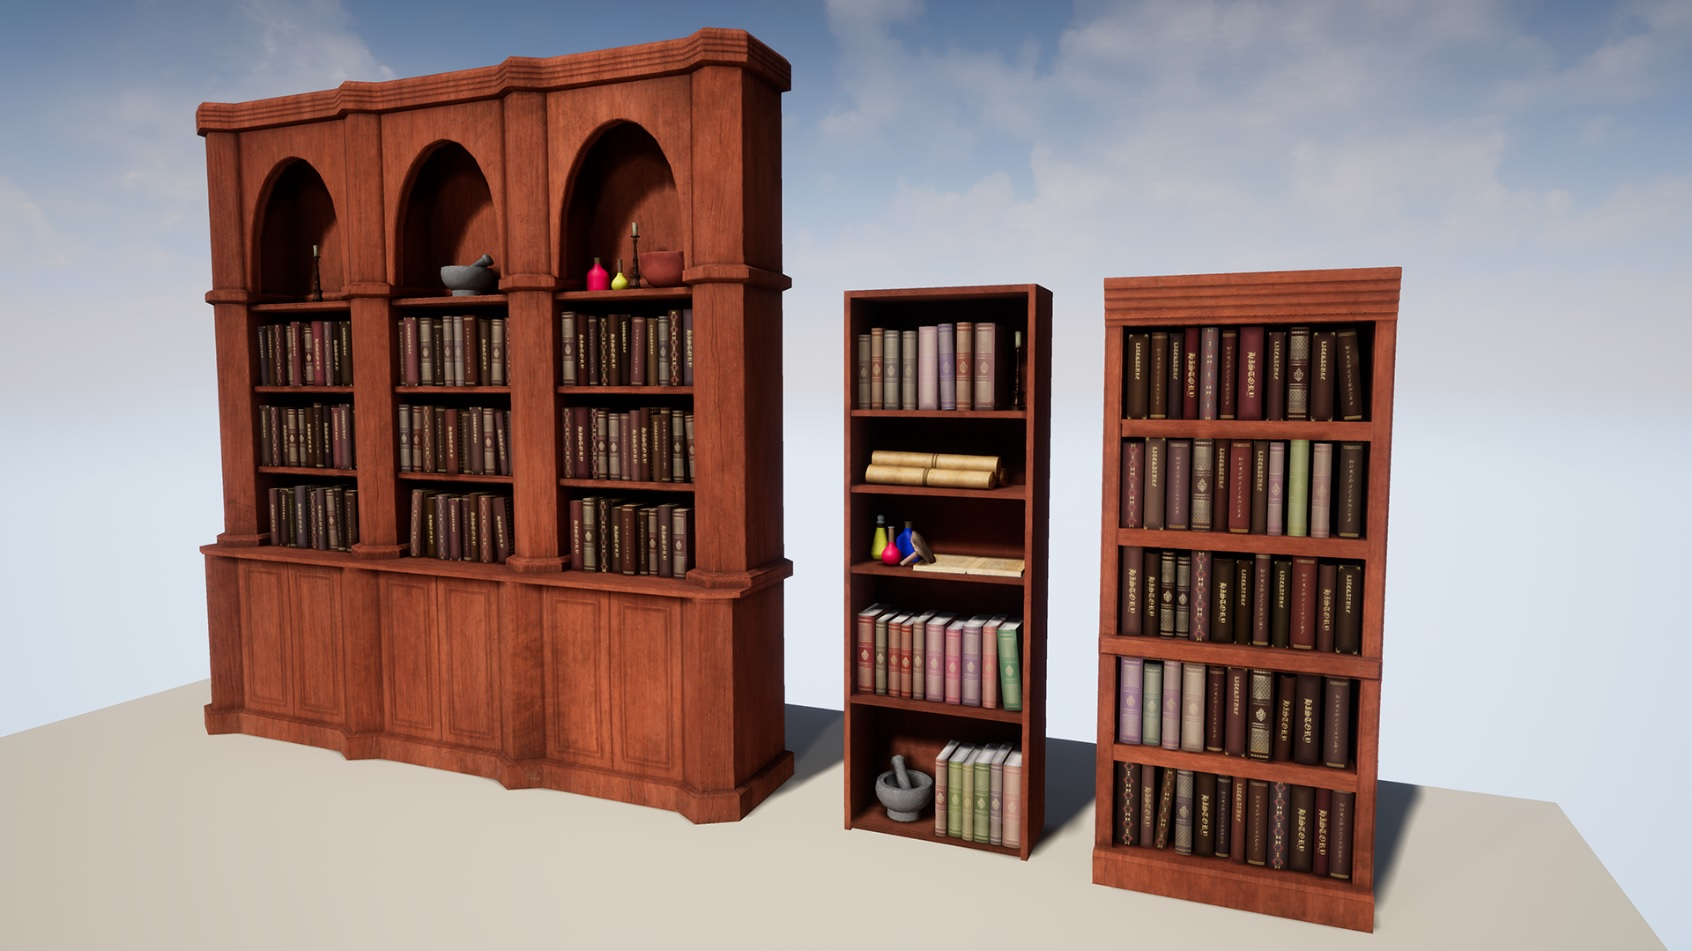 https://www.unrealengine.com/marketplace/enchanting-book-collection